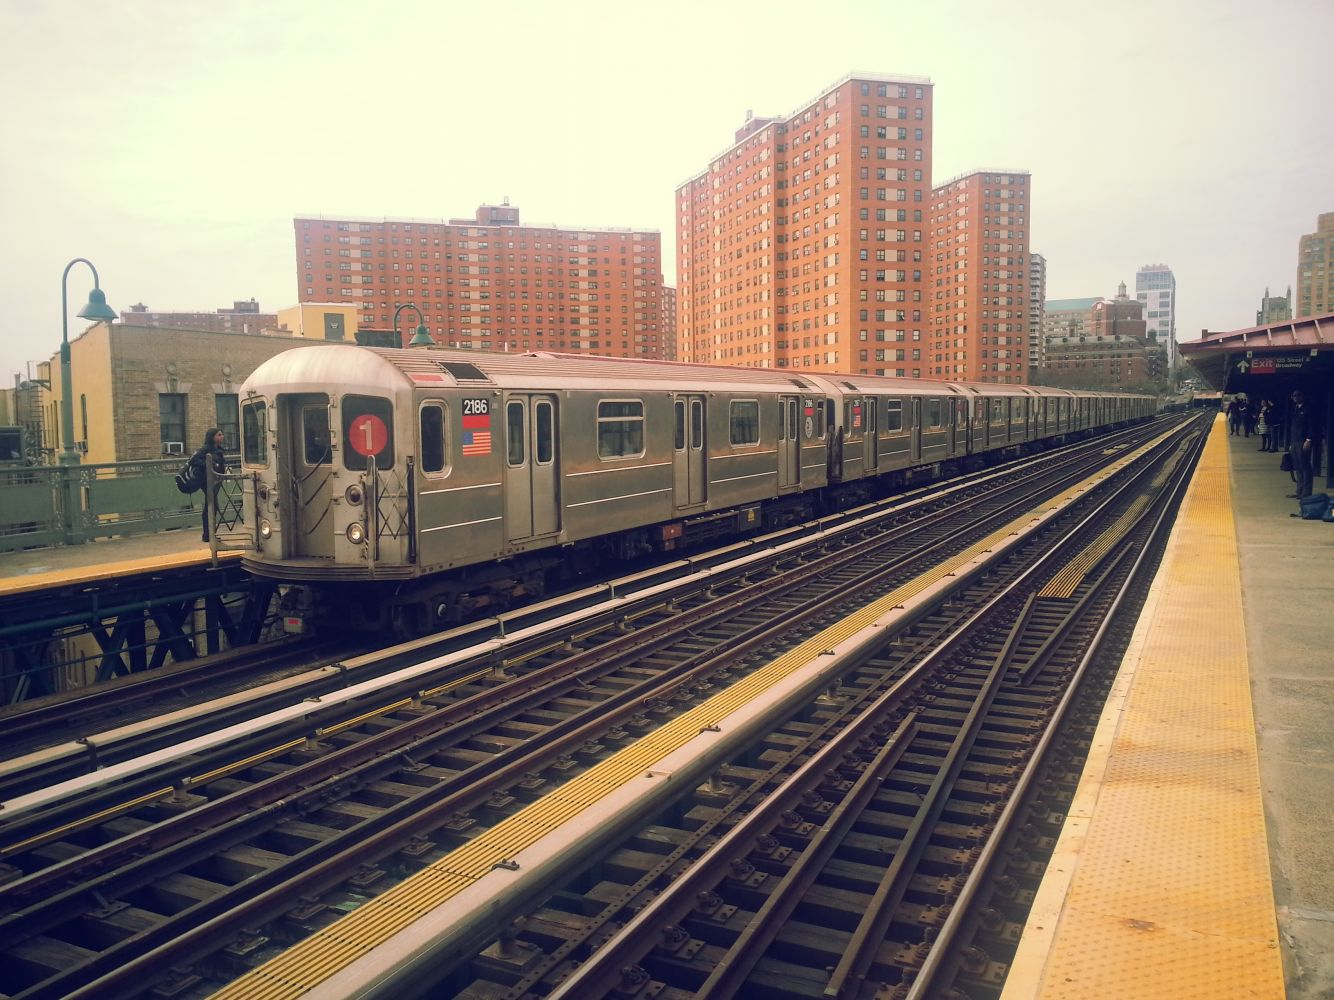 1 train arriving at 125th Street